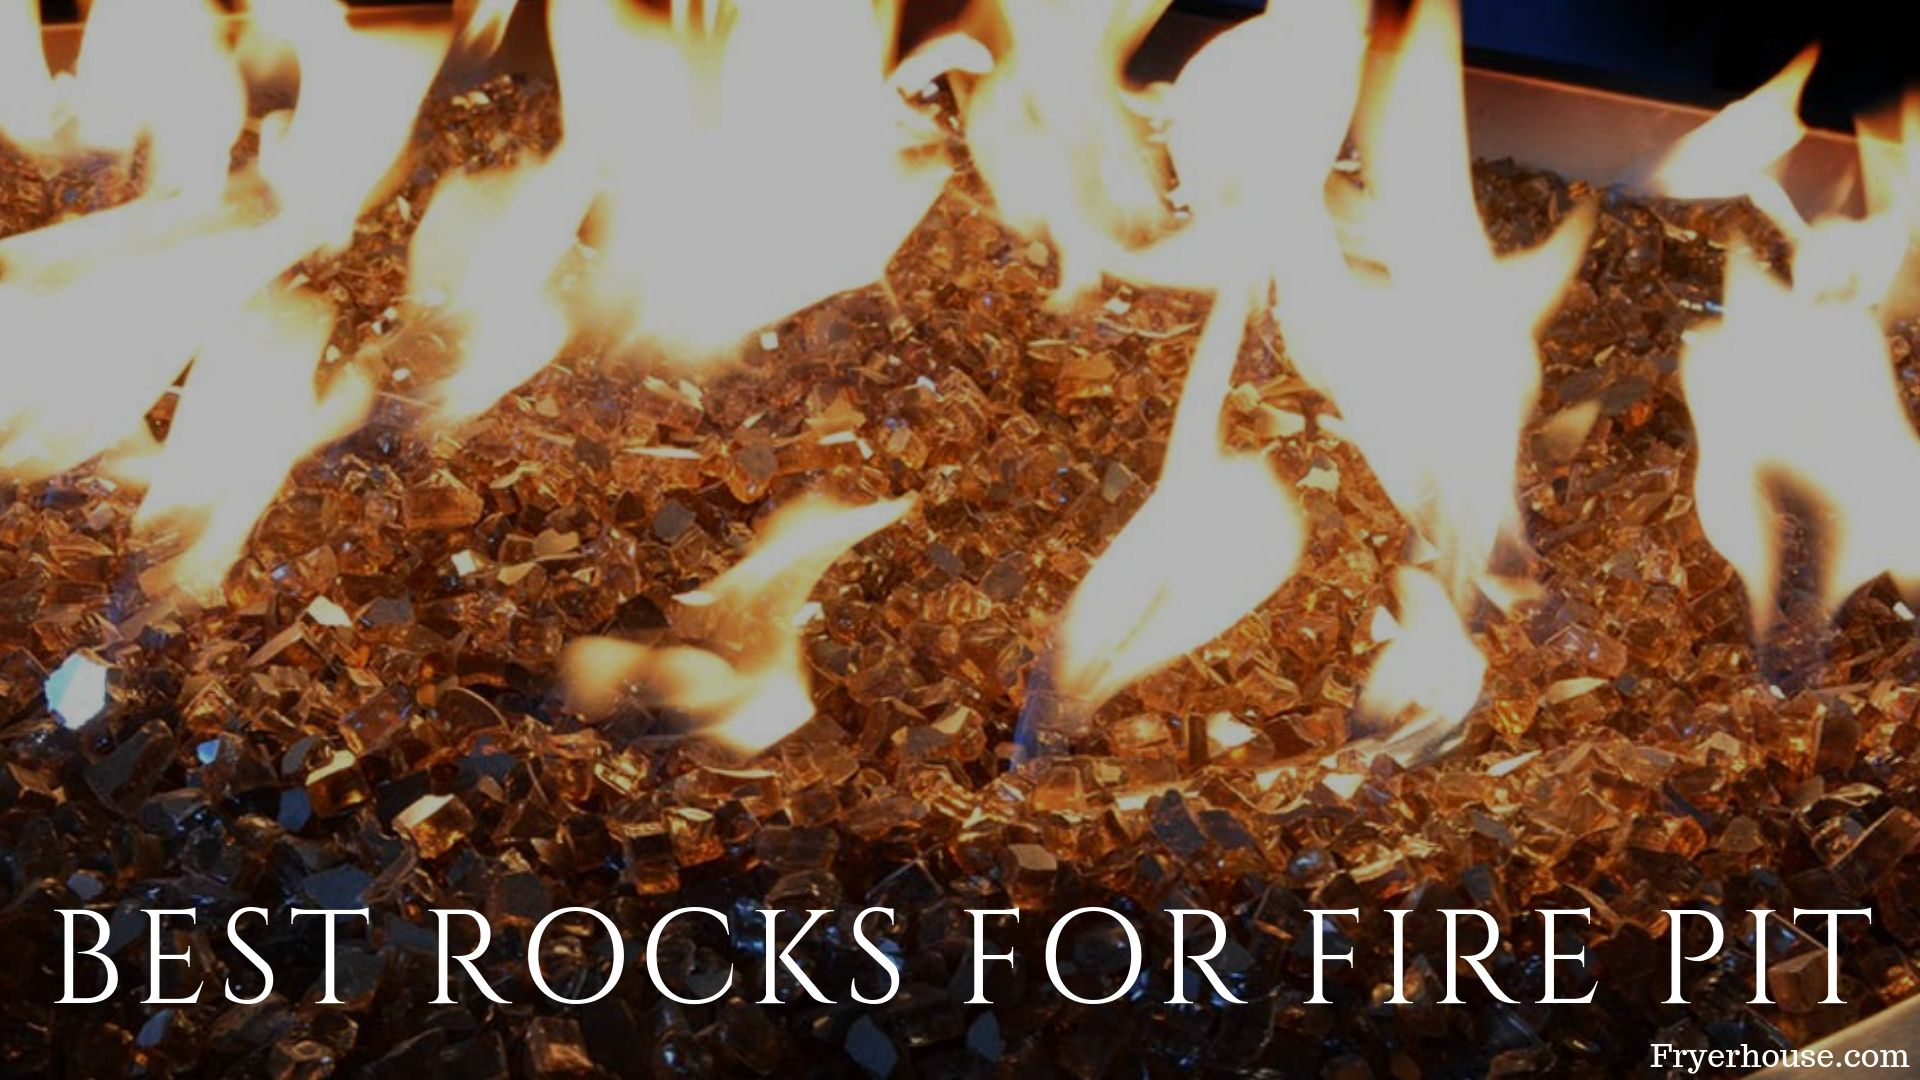 10 Best Rocks For Fire Pit To Buy 2021 Complete Buying Solution